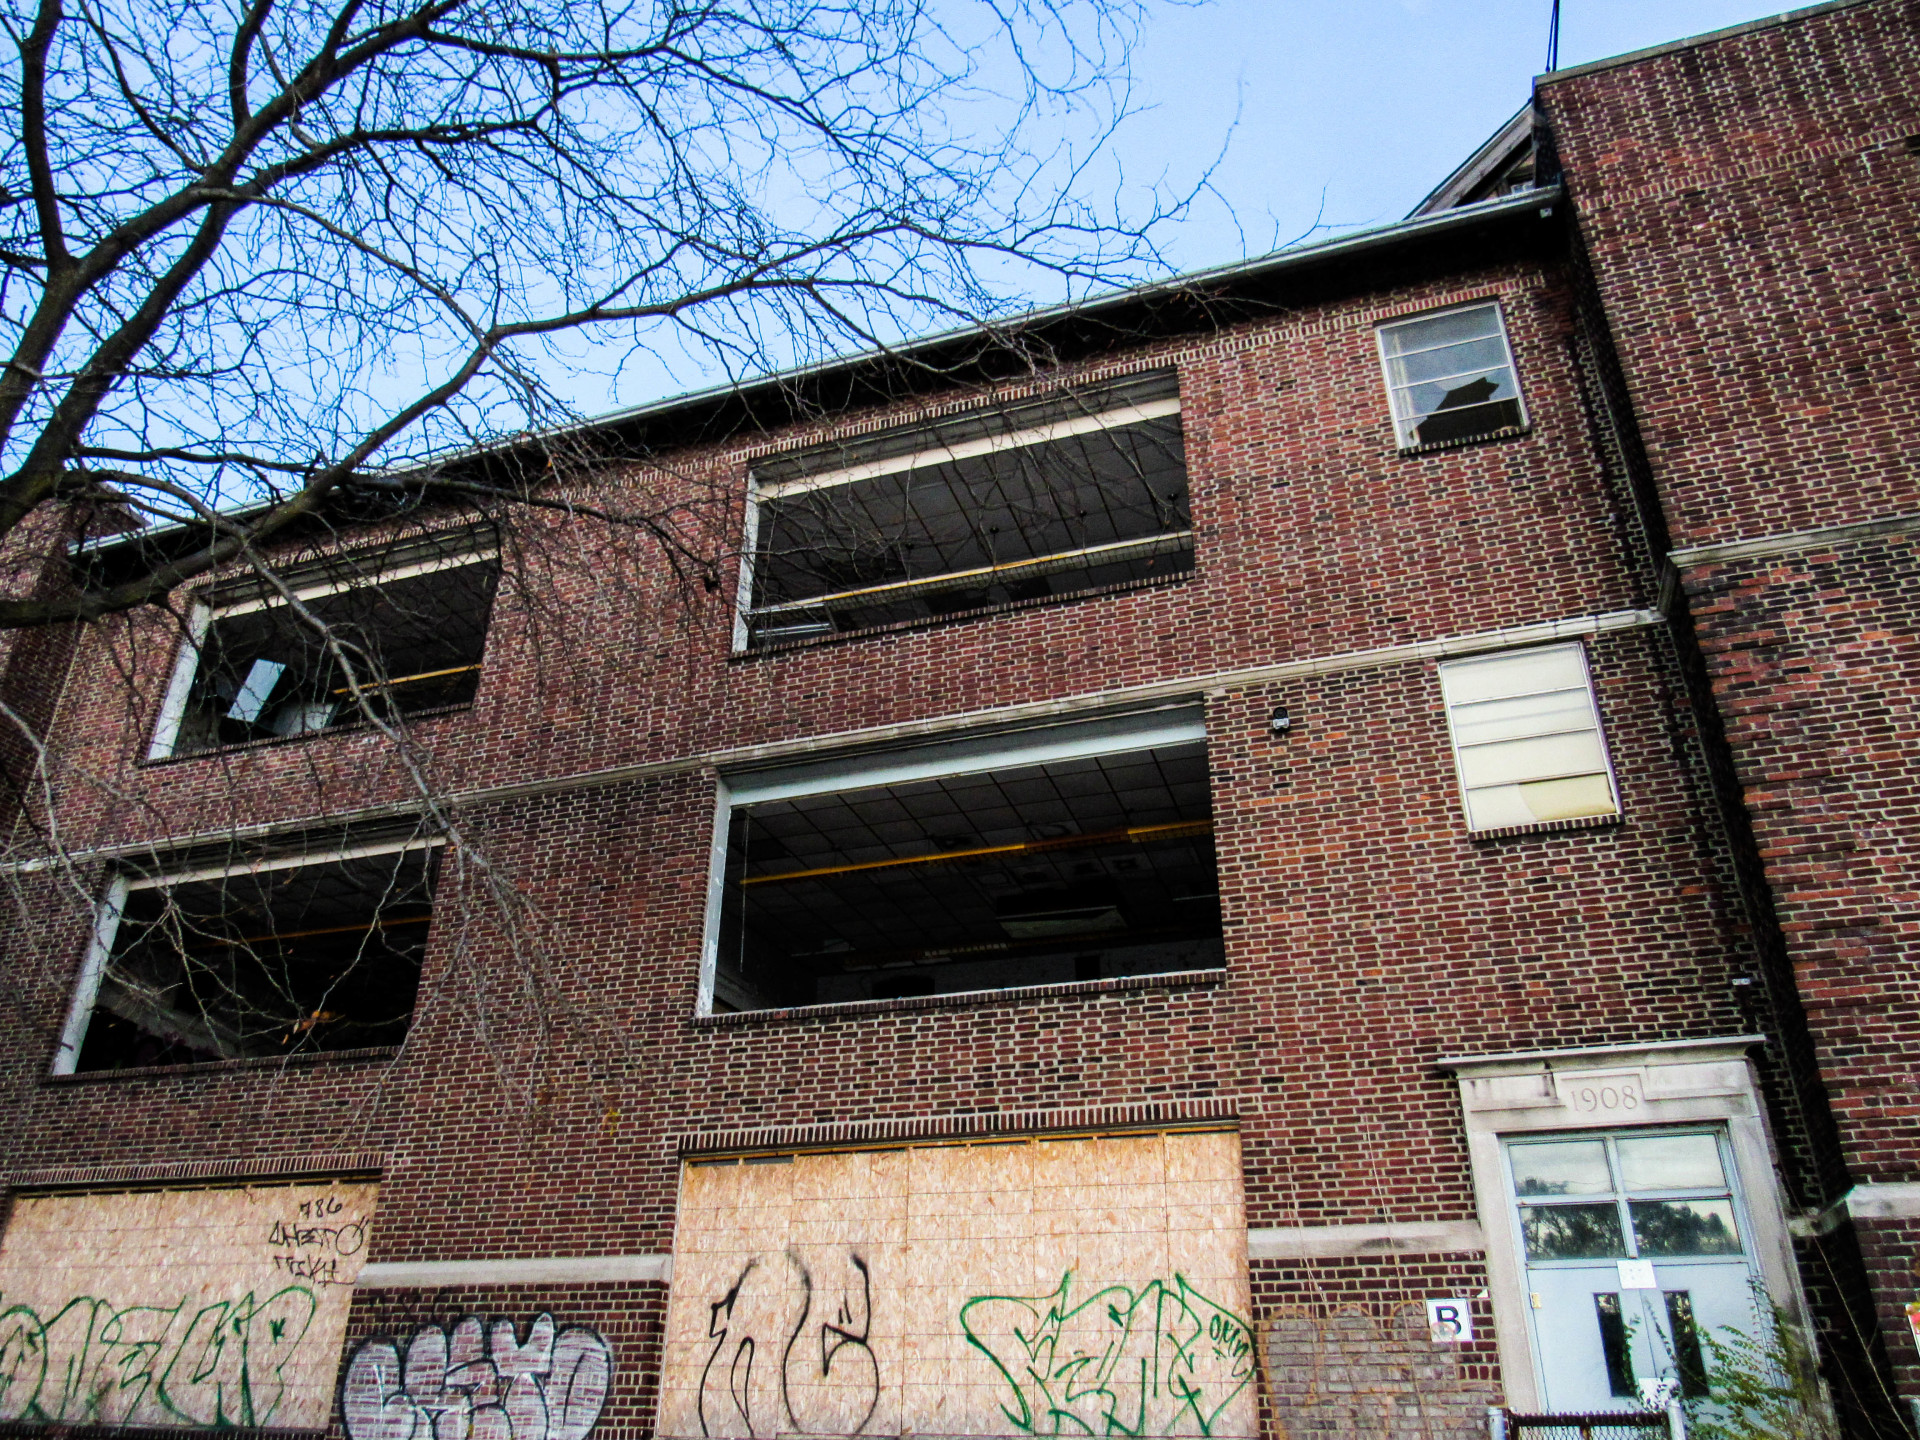 Photo of Gary, Indiana's abandoned, Emerson High School.